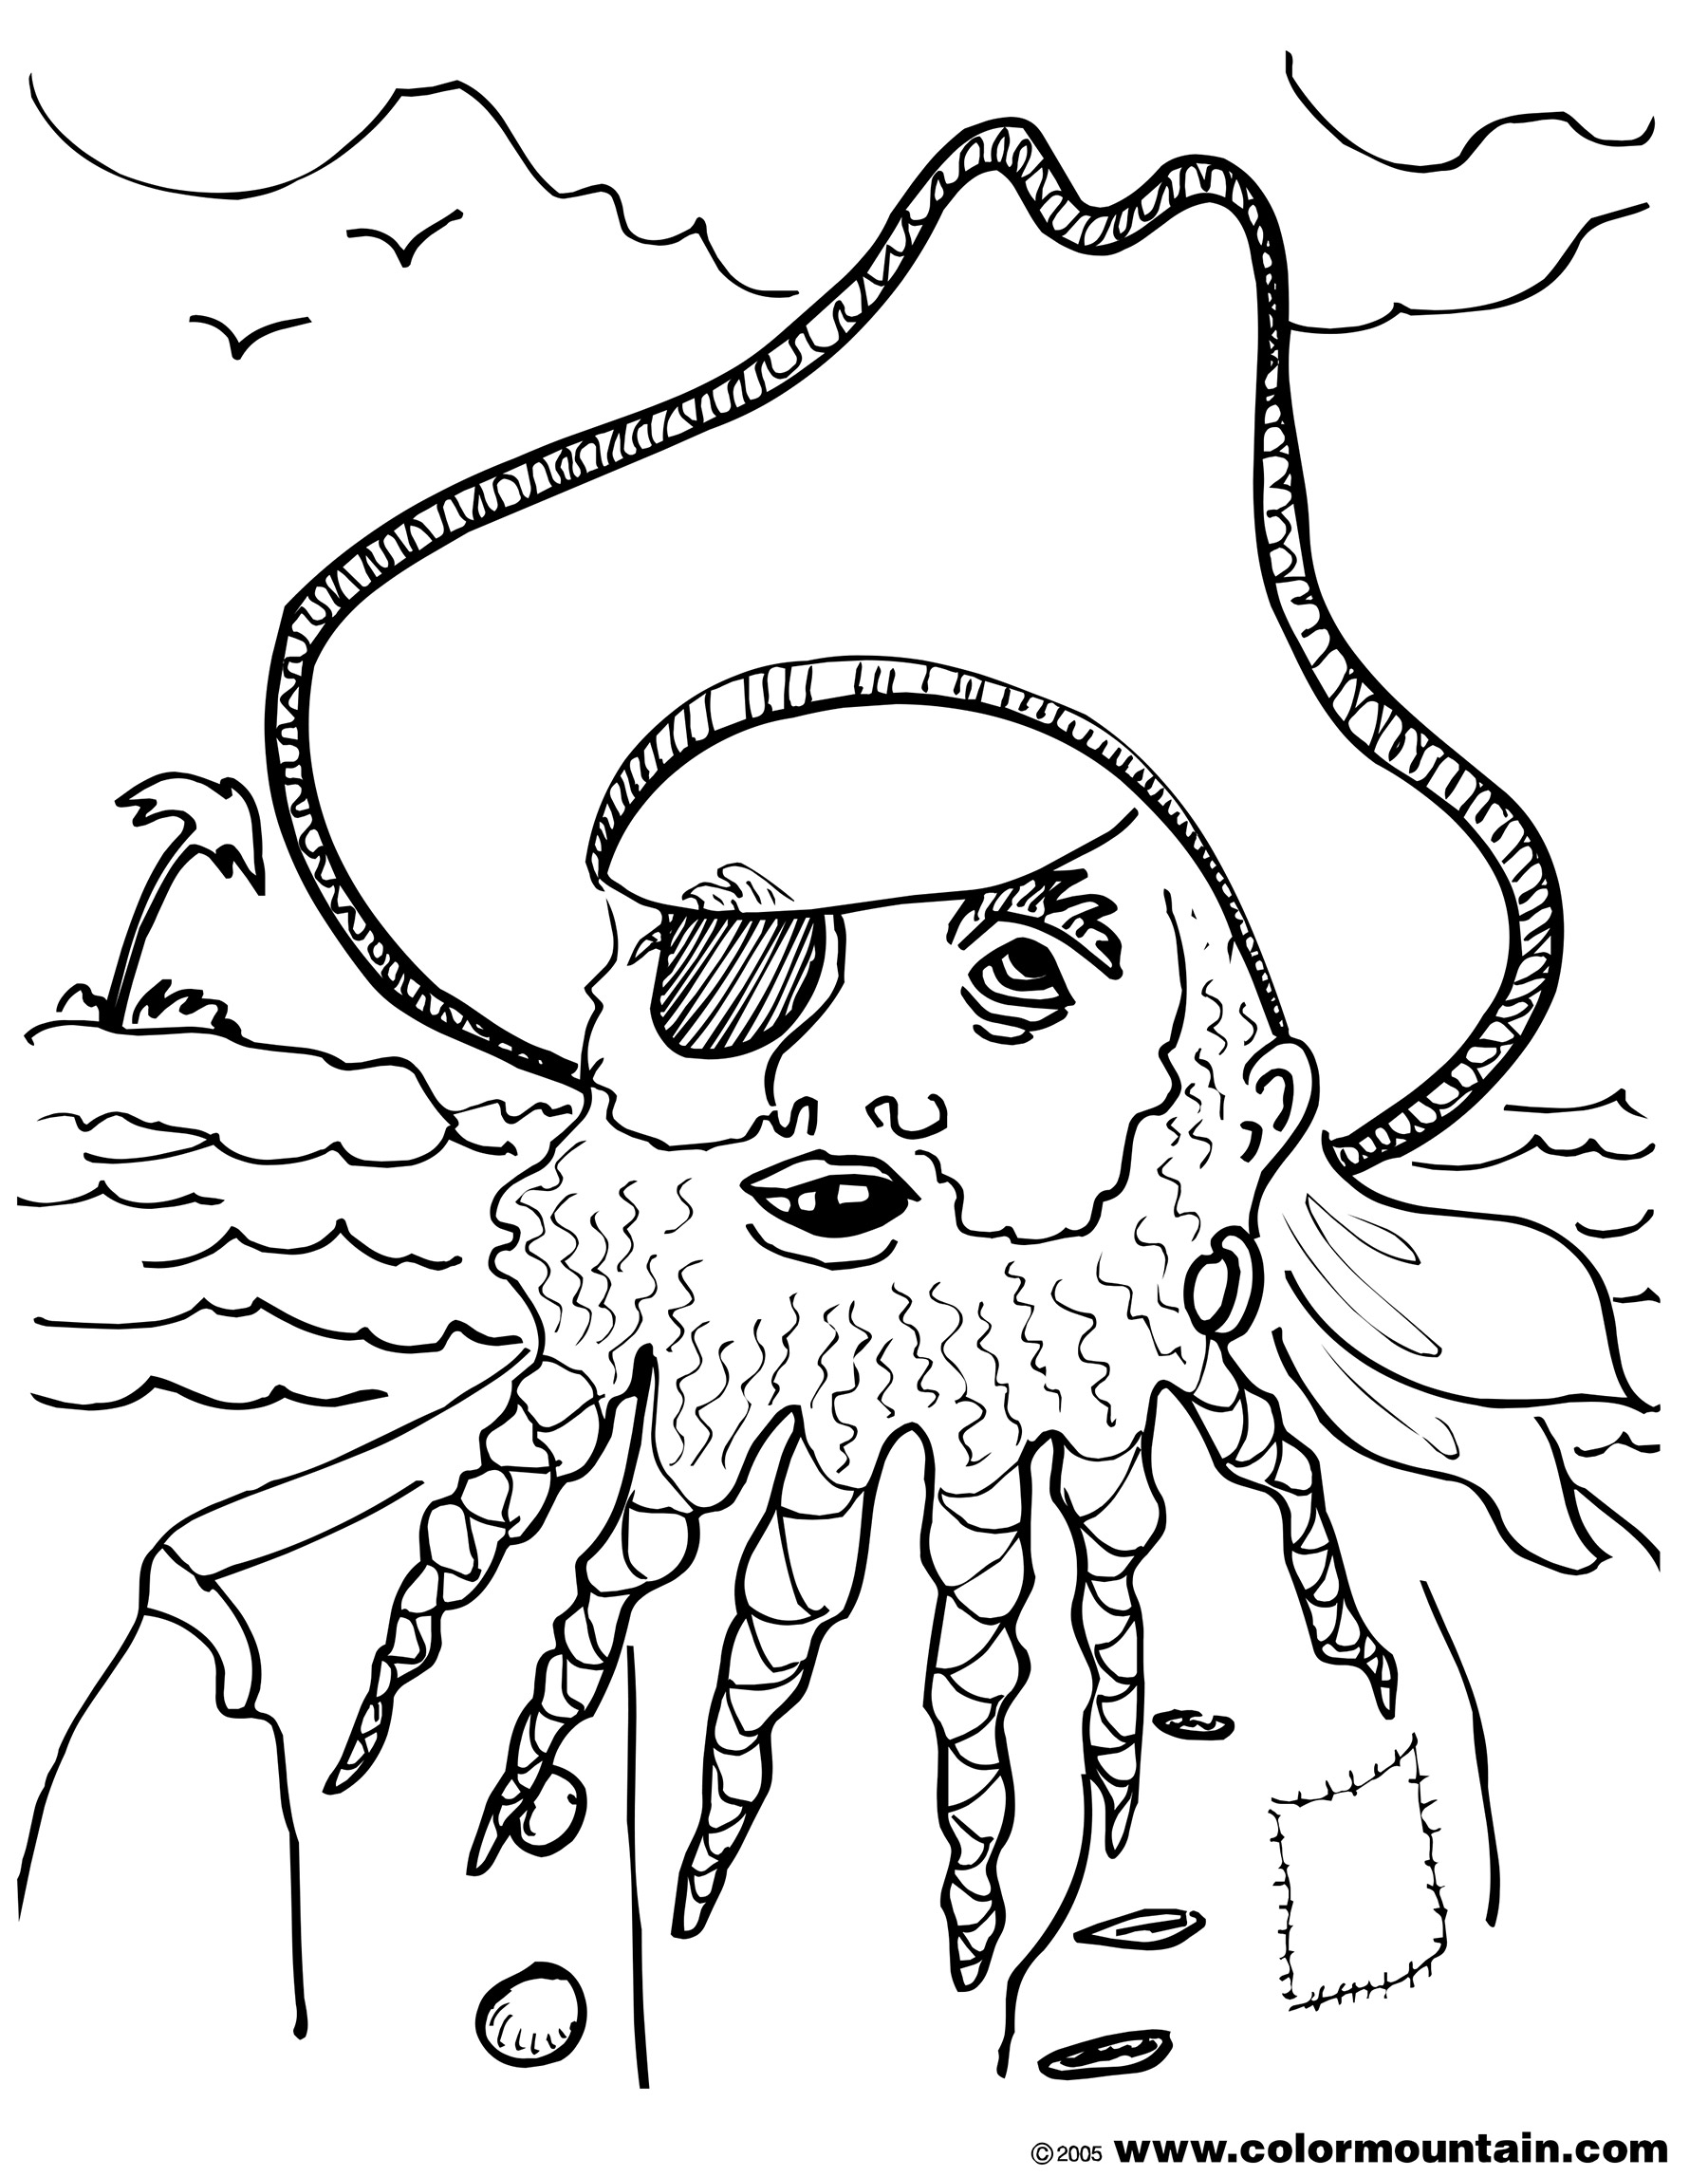 Pirate Dog Coloring Pages - Worksheet & Coloring Pages